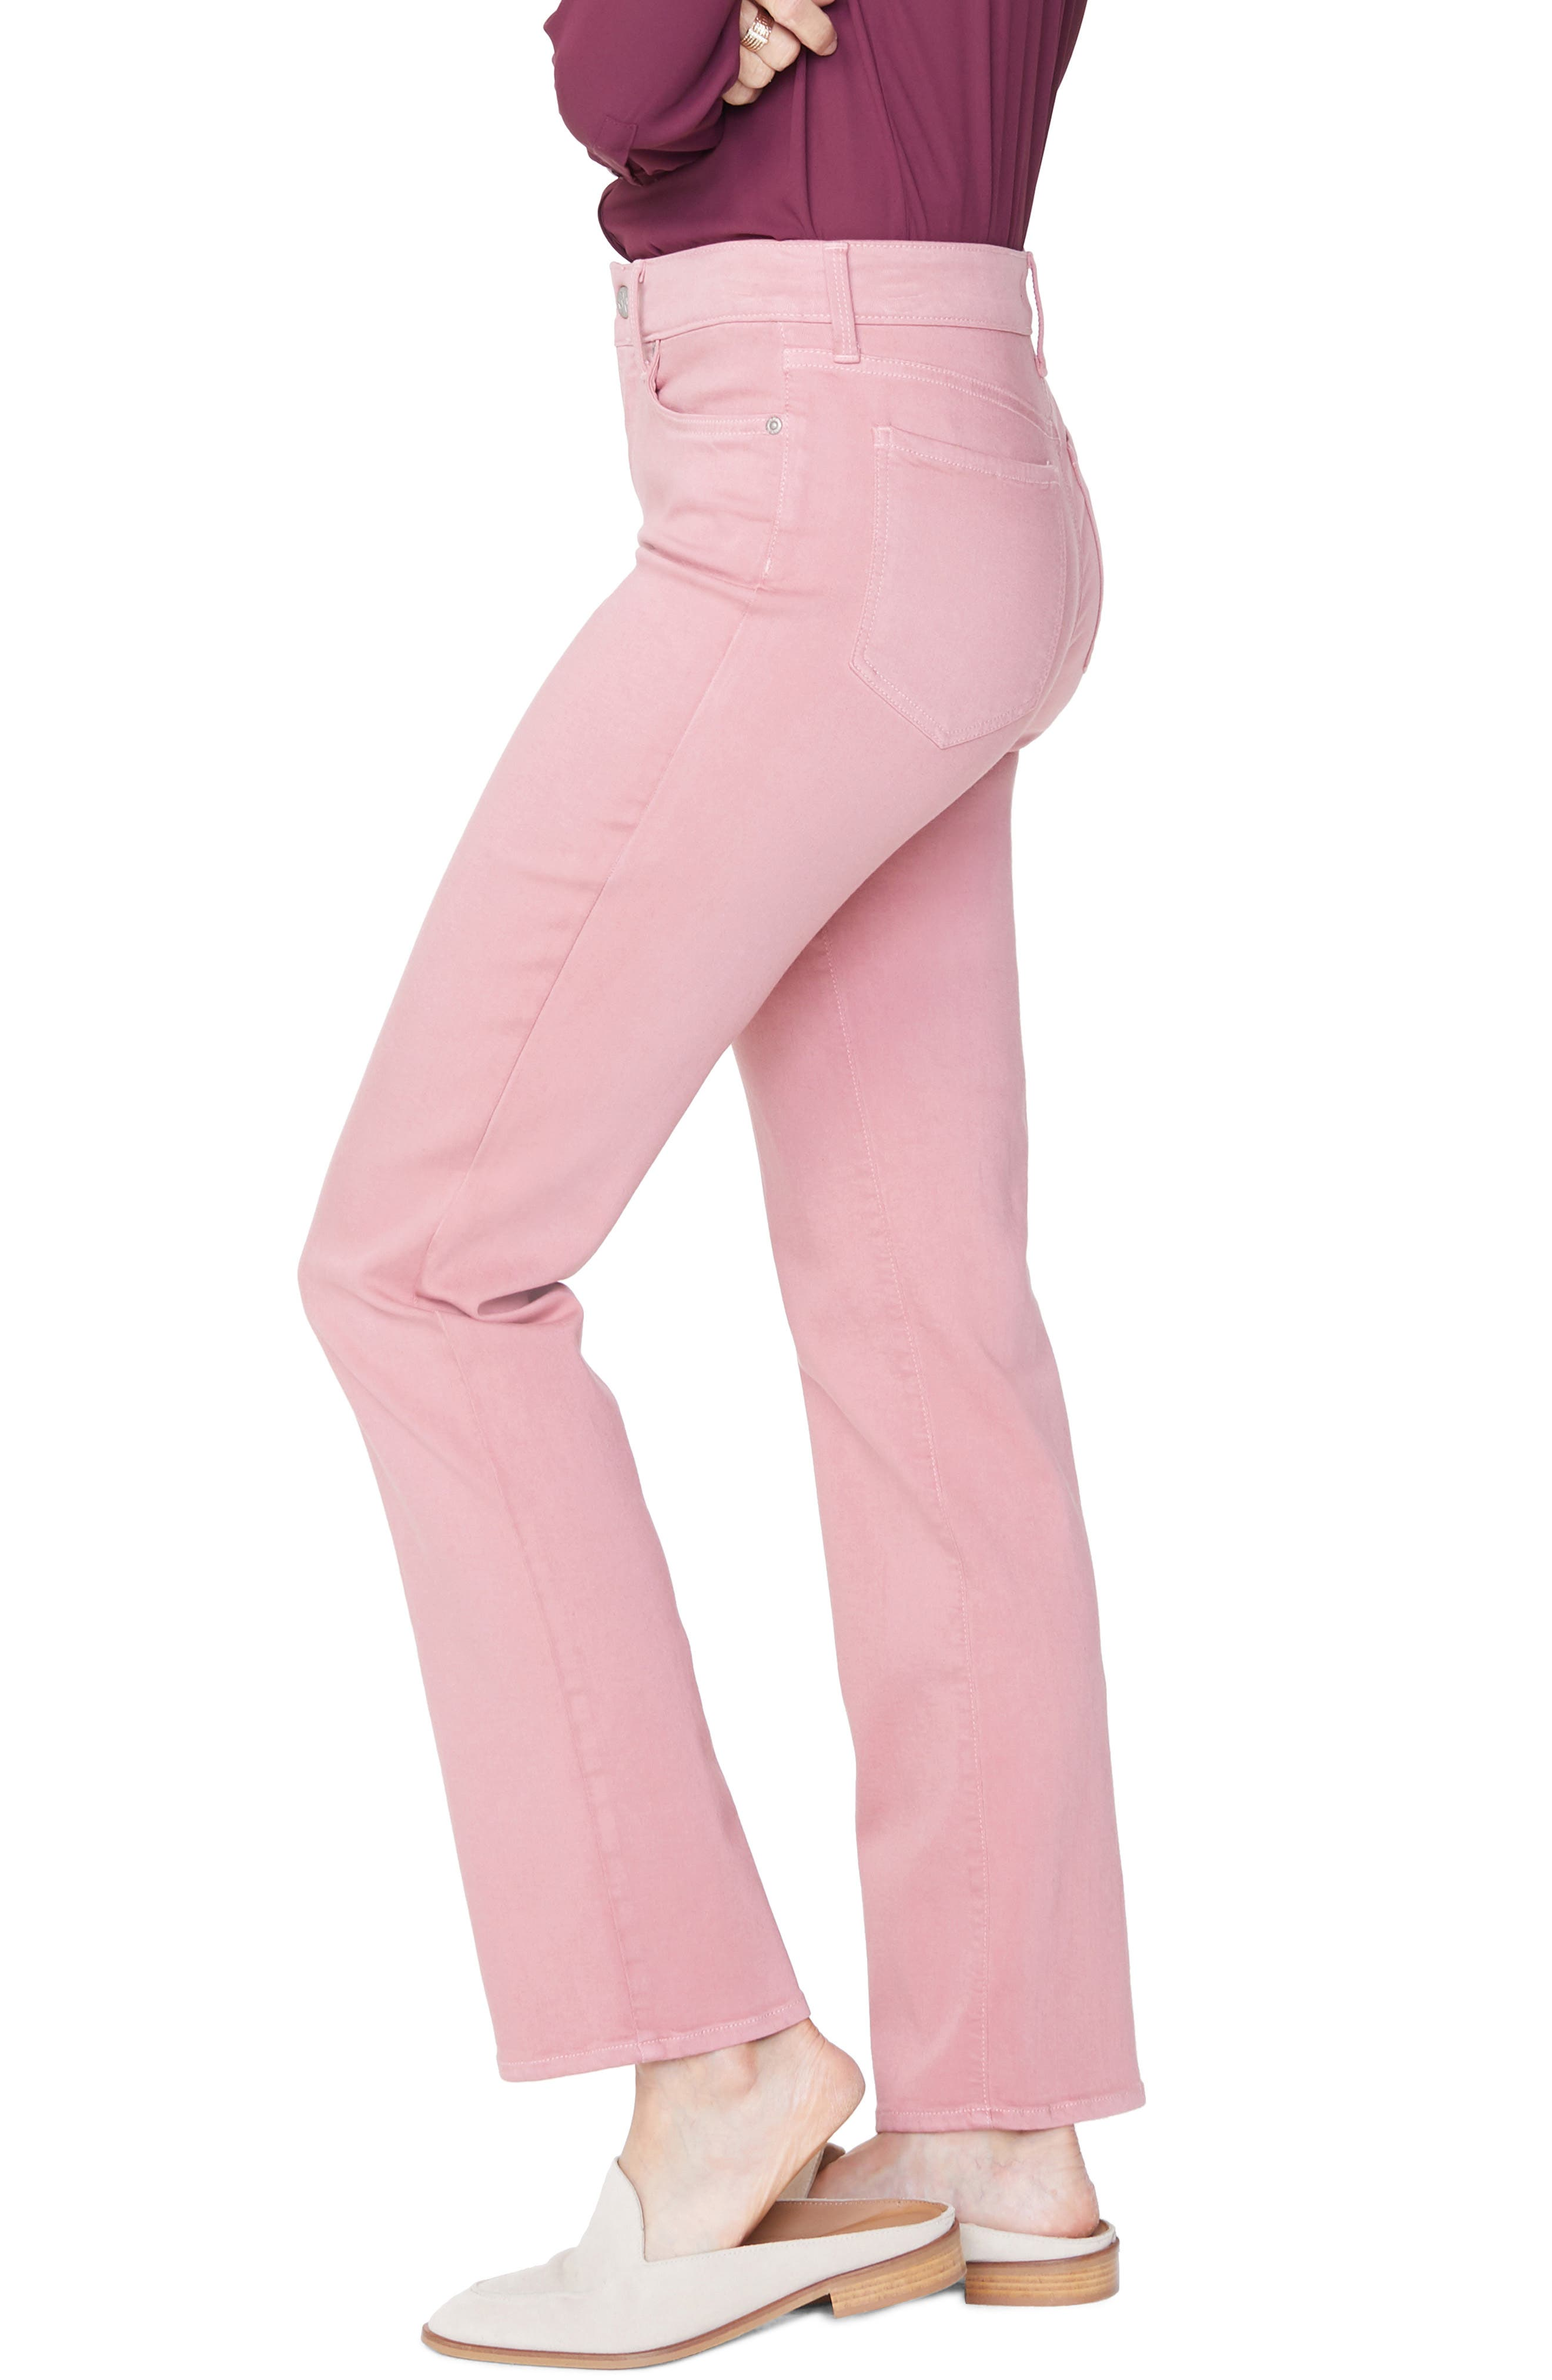 Marilyn Stretch Twill Straight Leg Pants,                             Alternate thumbnail 3, color,                             WOOD ROSE